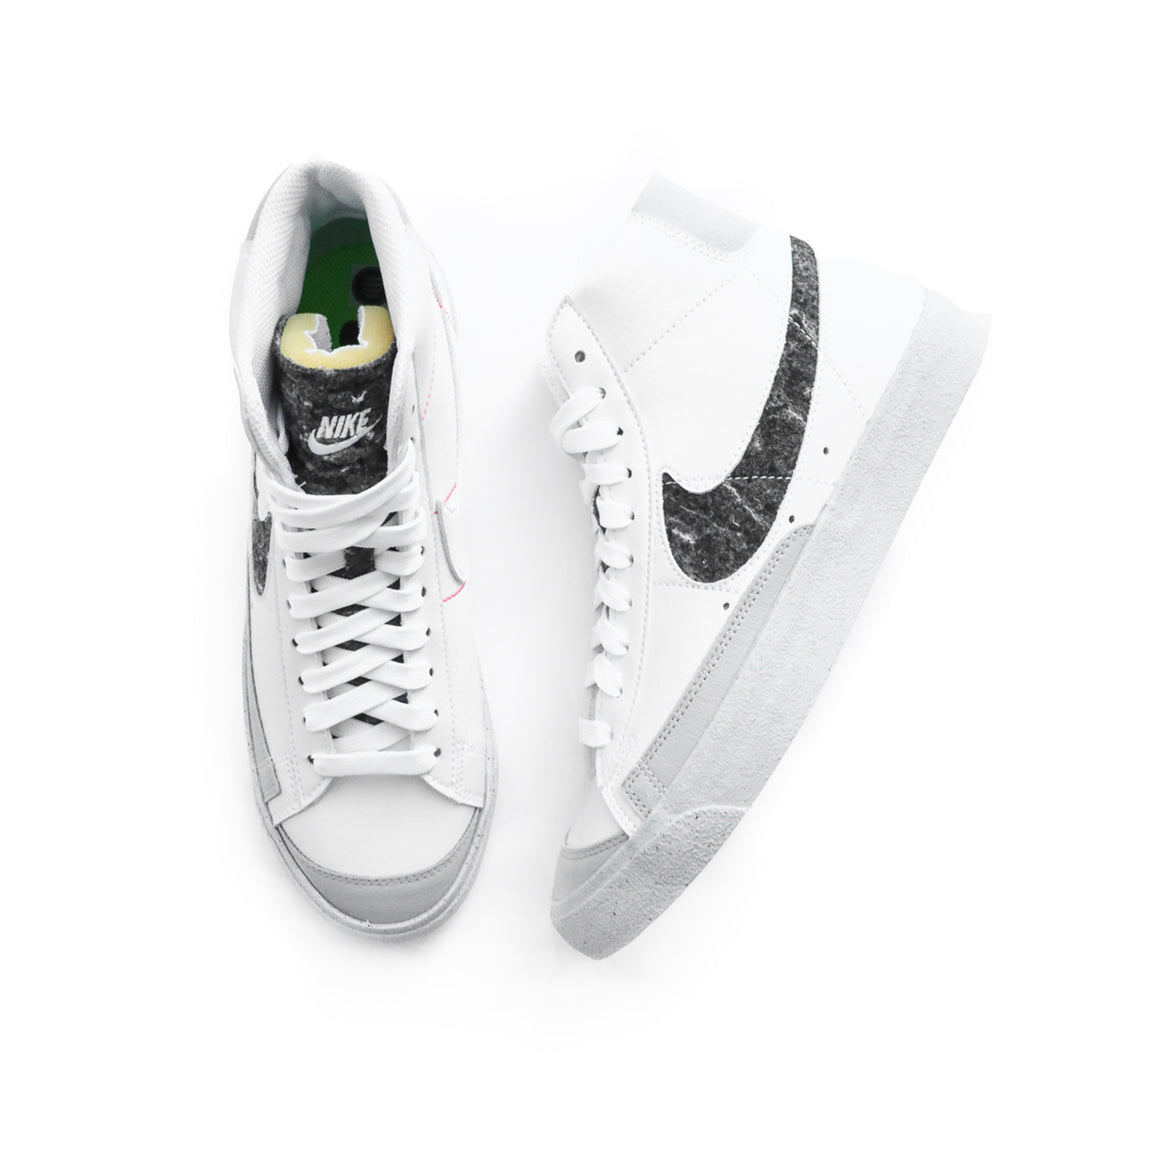 Nike Blazer Mid '77 (White/White-Light Smoke Grey) - Nike Blazer Mid '77 (White/White-Light Smoke Grey) -